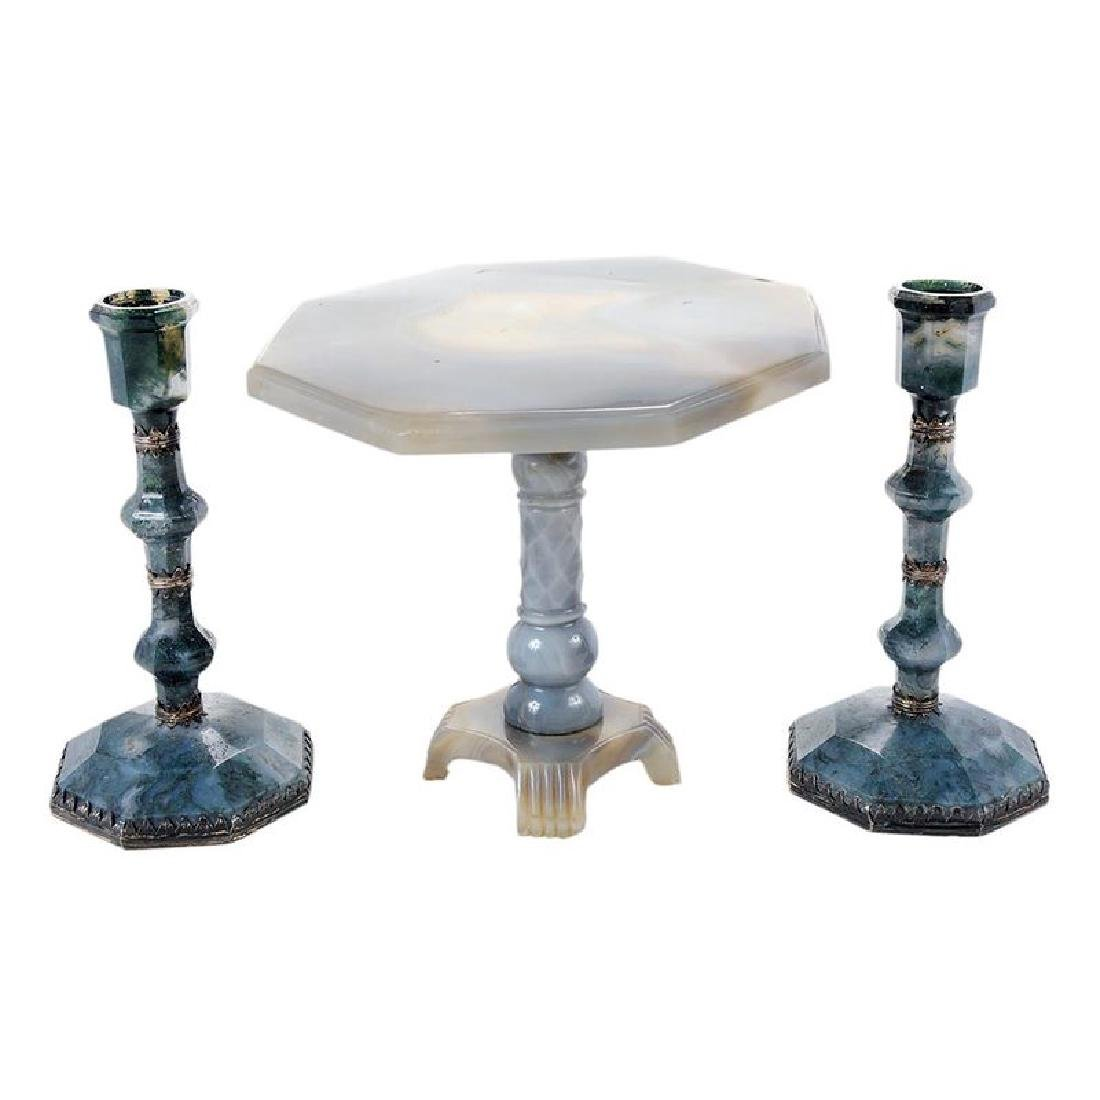 Three Carved Agate Tabletop Articles